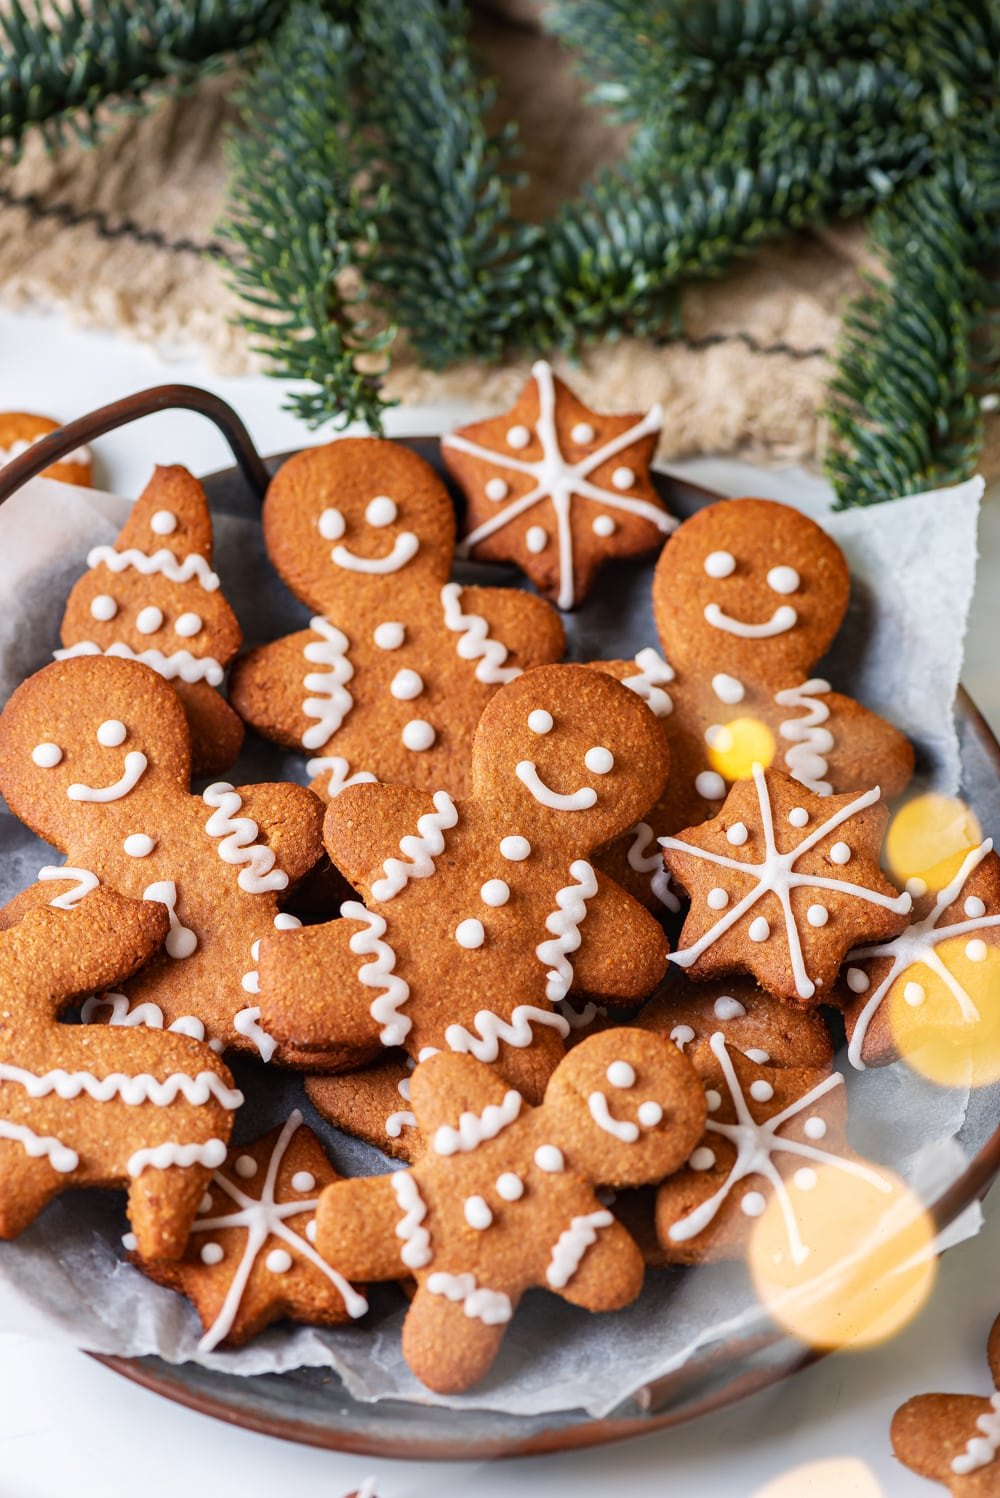 A plate full of gingerbread cookies on white parchment paper.